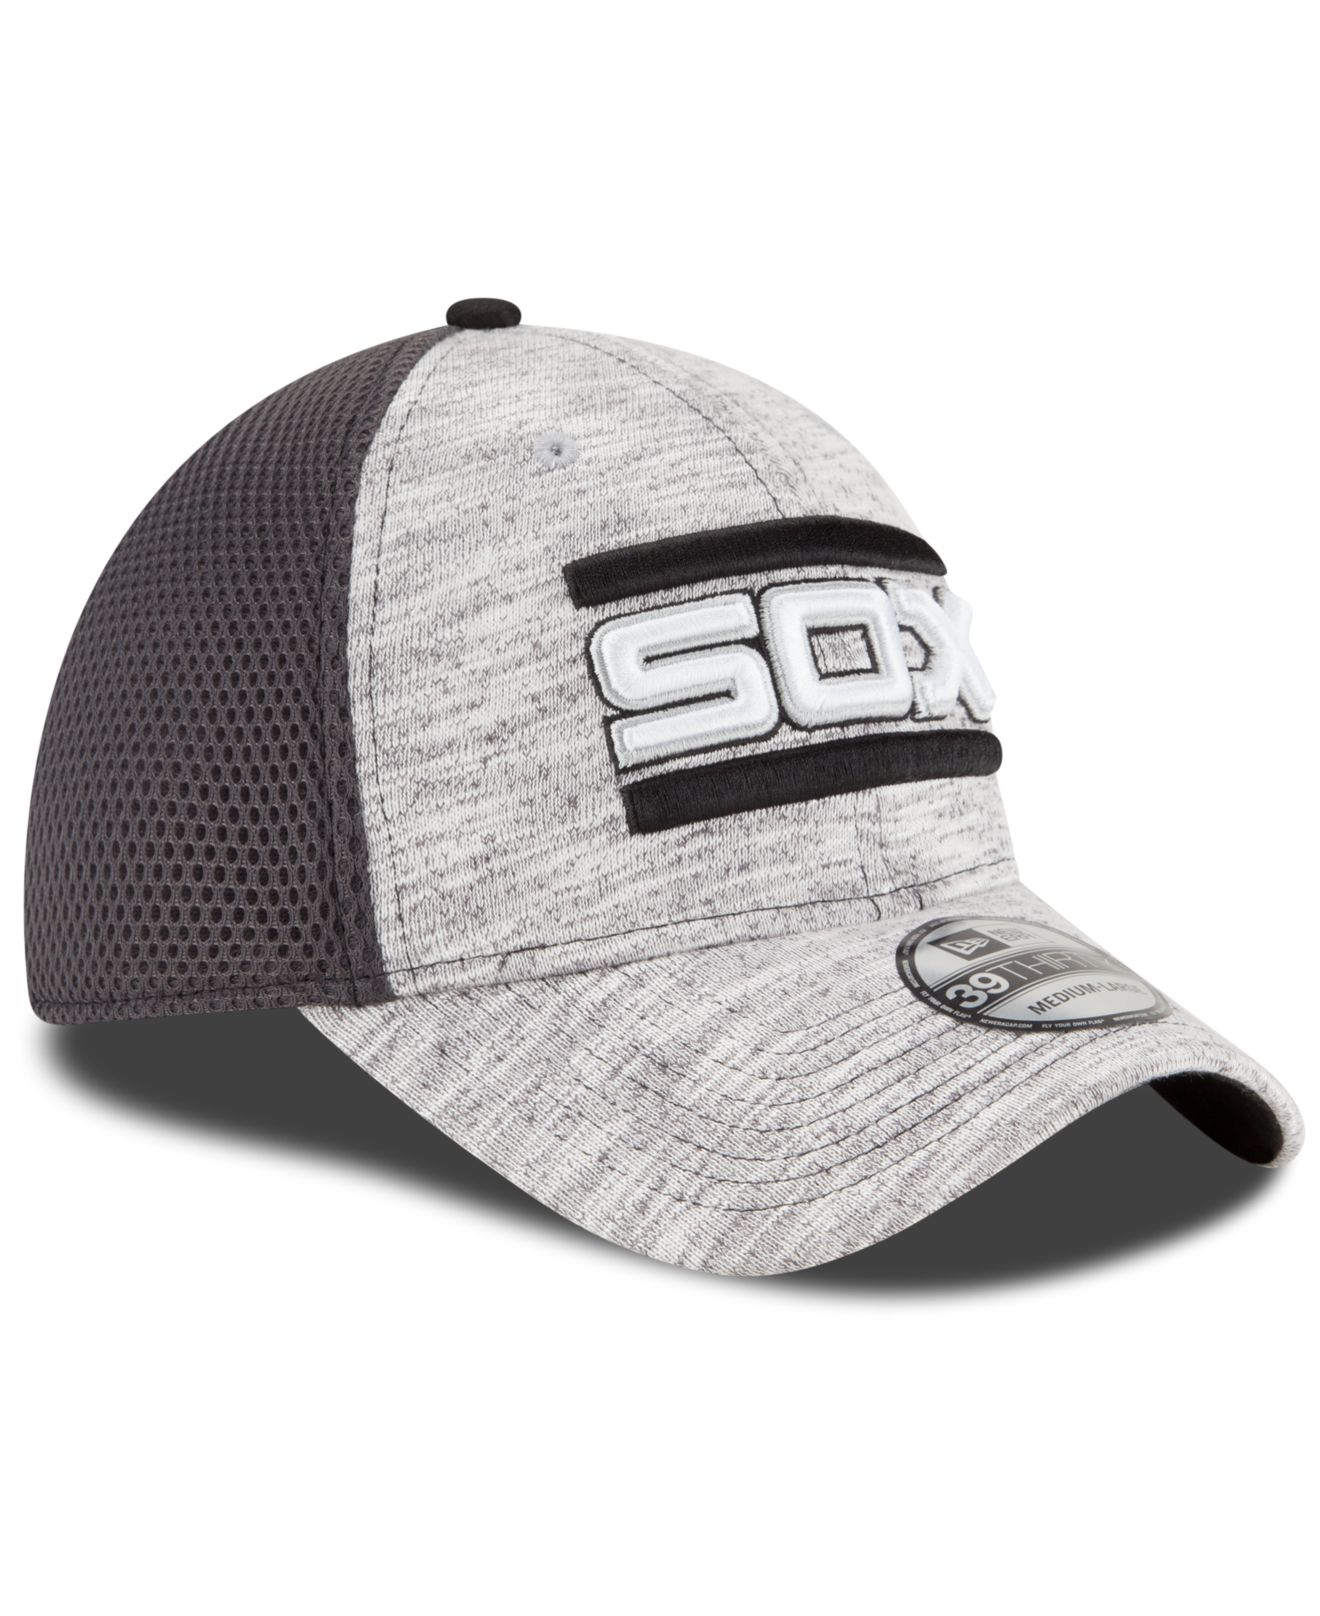 best service 60d57 6a7ec ... canada lyst ktz chicago white sox clubhouse 39thirty cap in black for  men 014f8 7ae1e